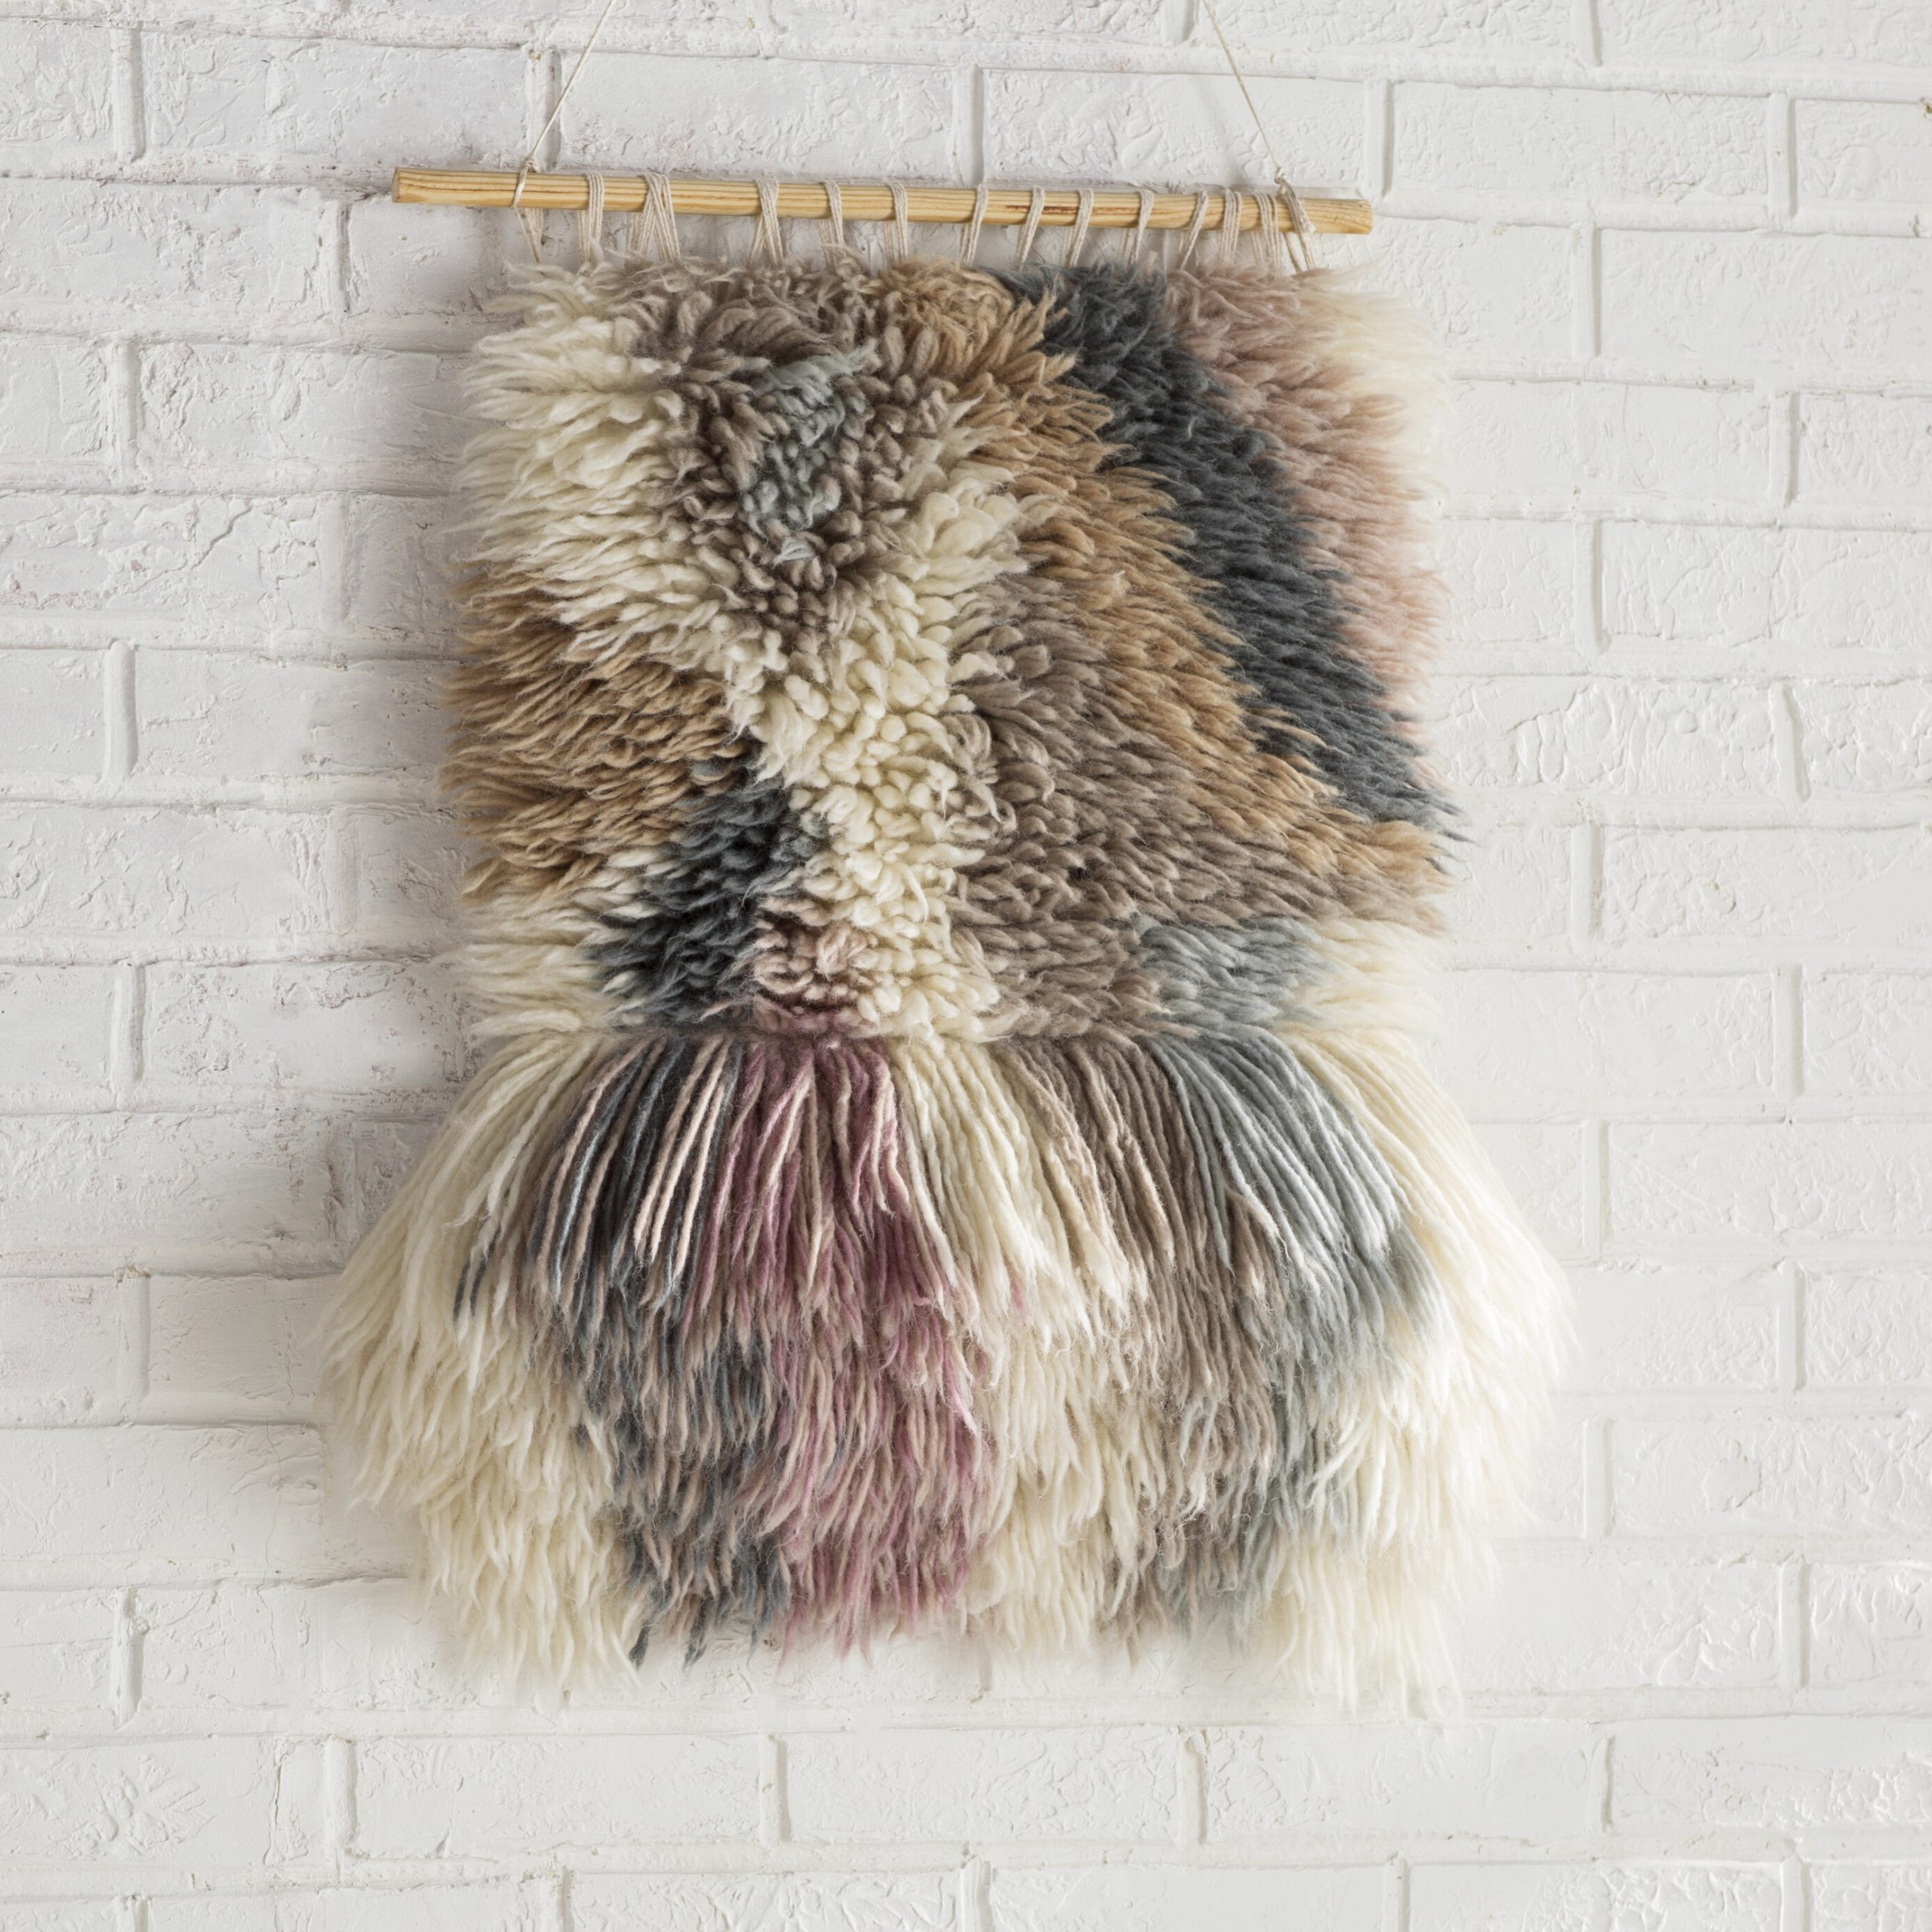 Contemporary Hand Woven Wall Hanging Intended For Recent Hand Woven Wall Hangings (View 6 of 20)